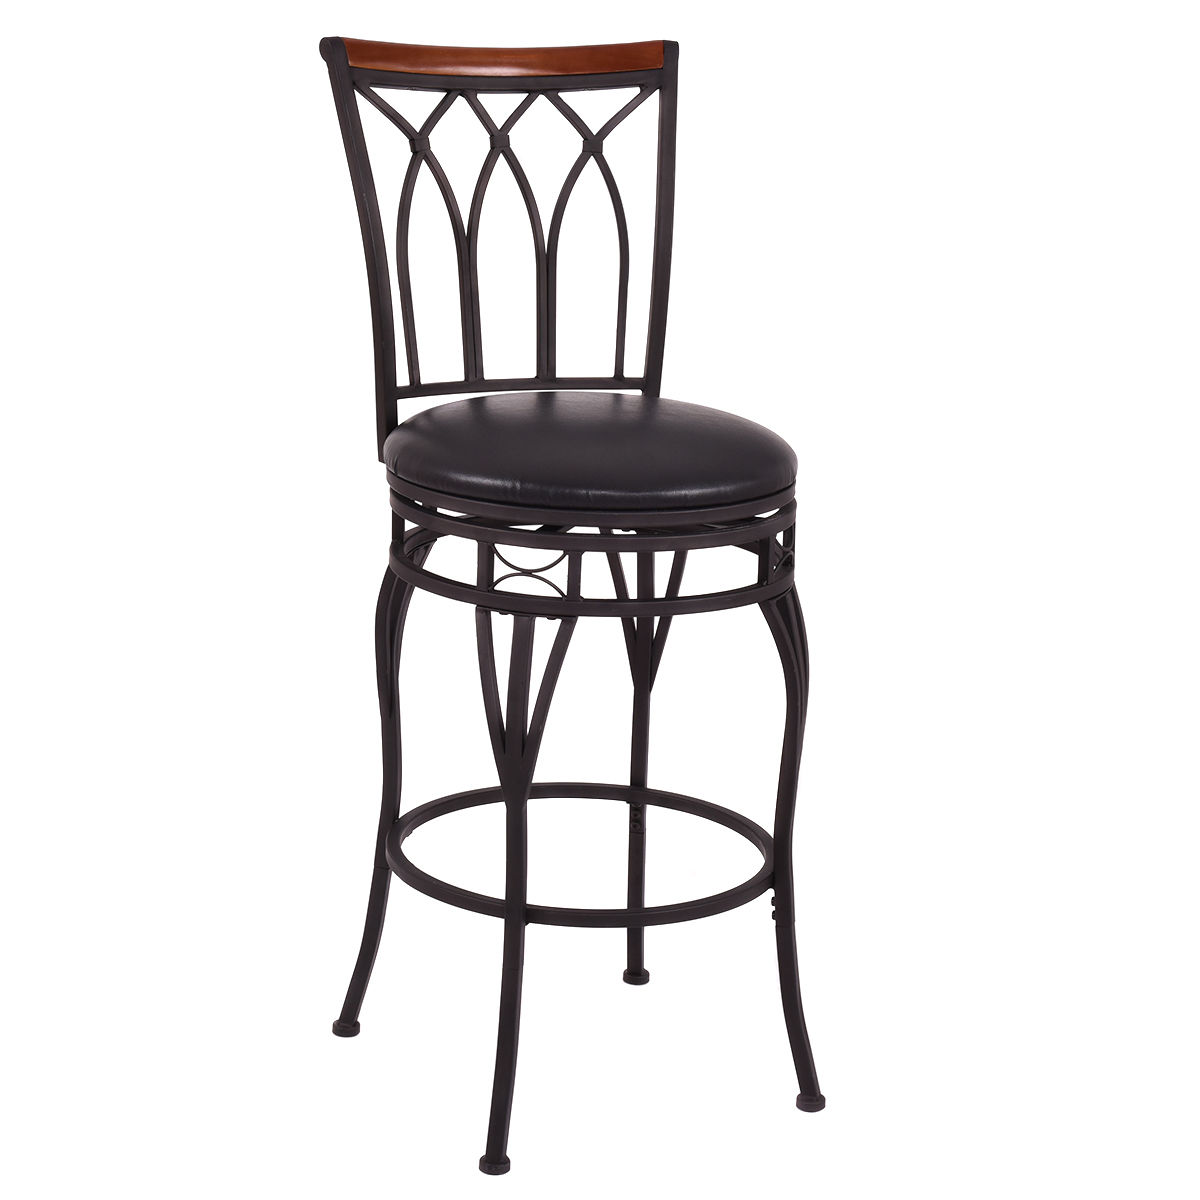 Vintage Swivel Bar Stools For Home 24